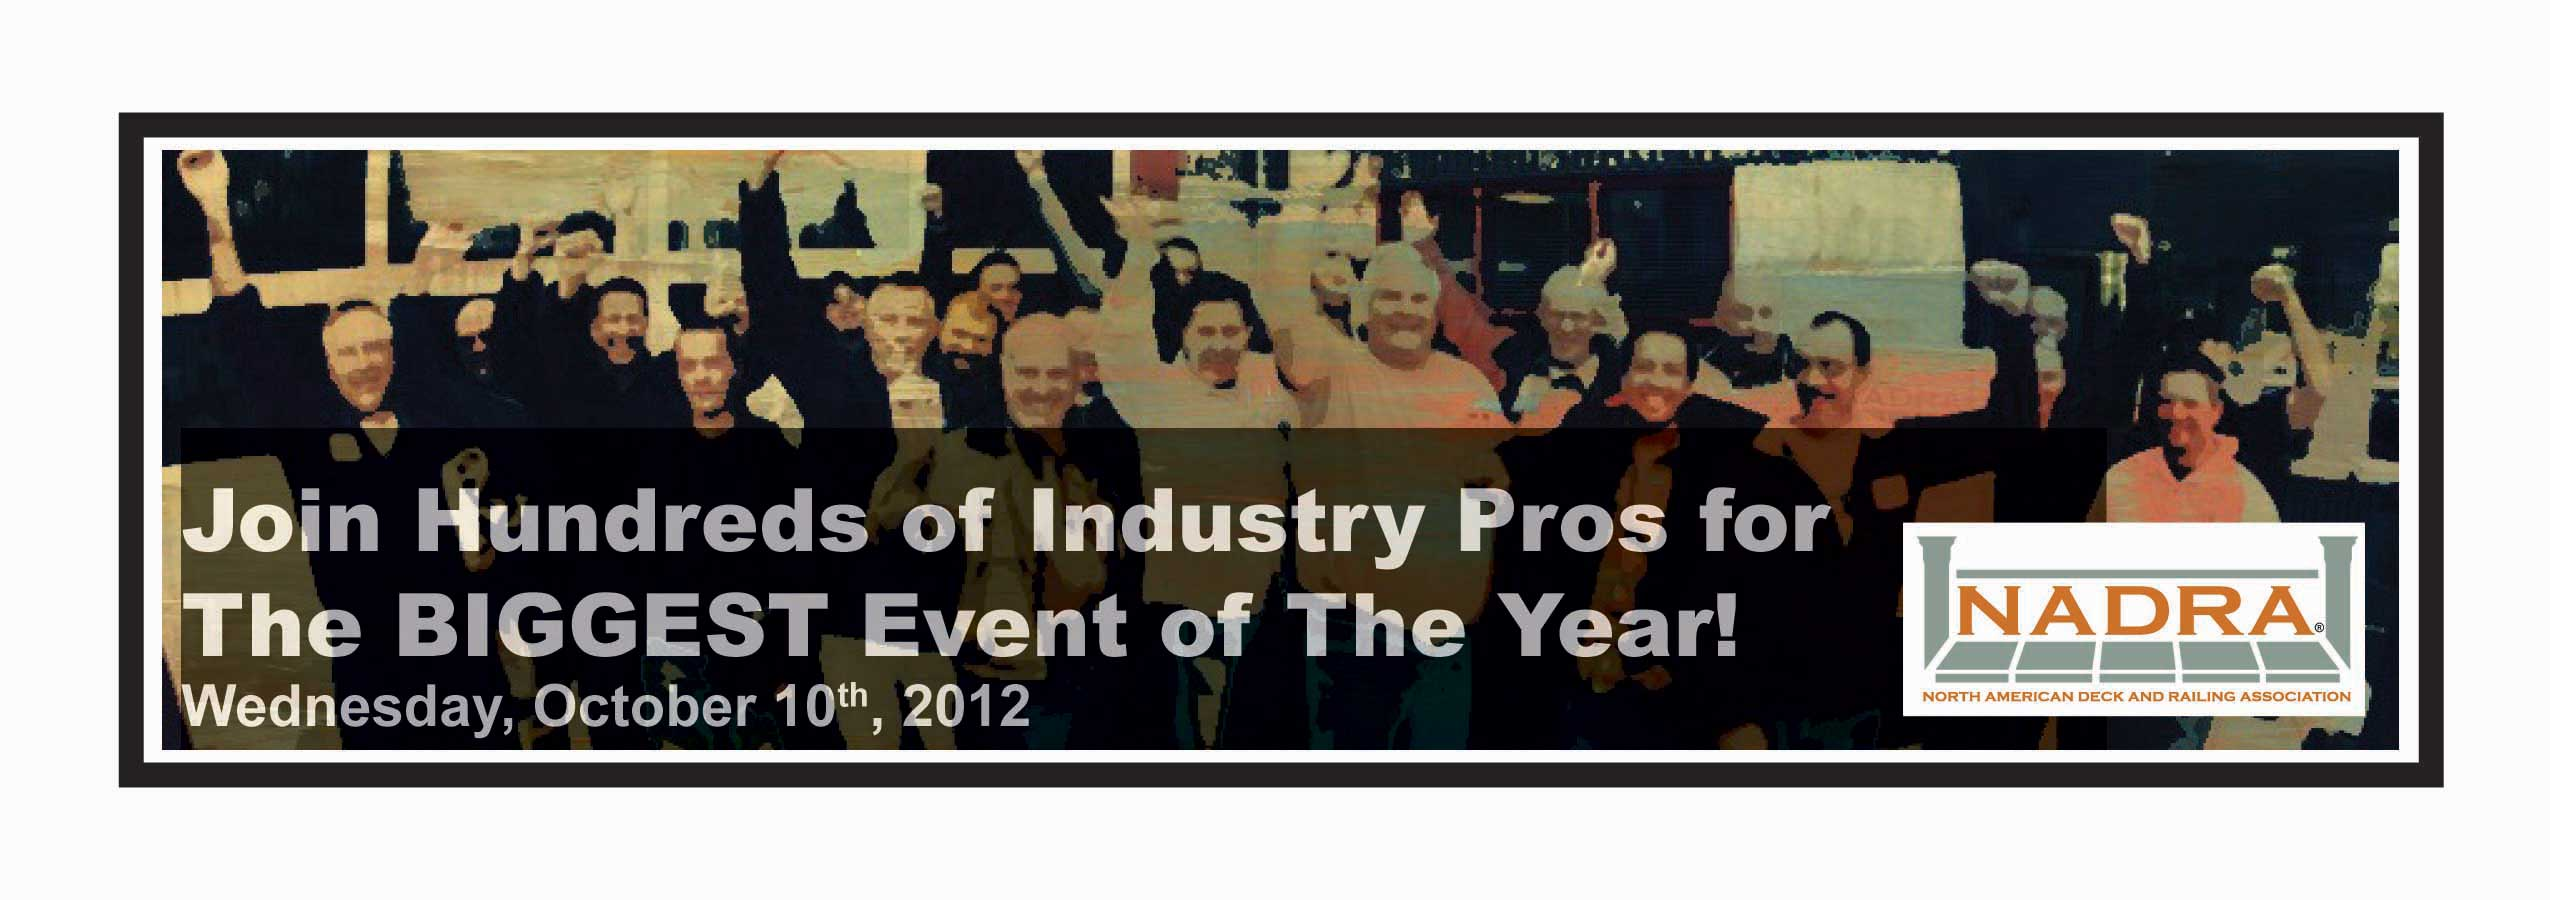 Join Hundreds of Industry Pros for the BIGGEST Event of the Year